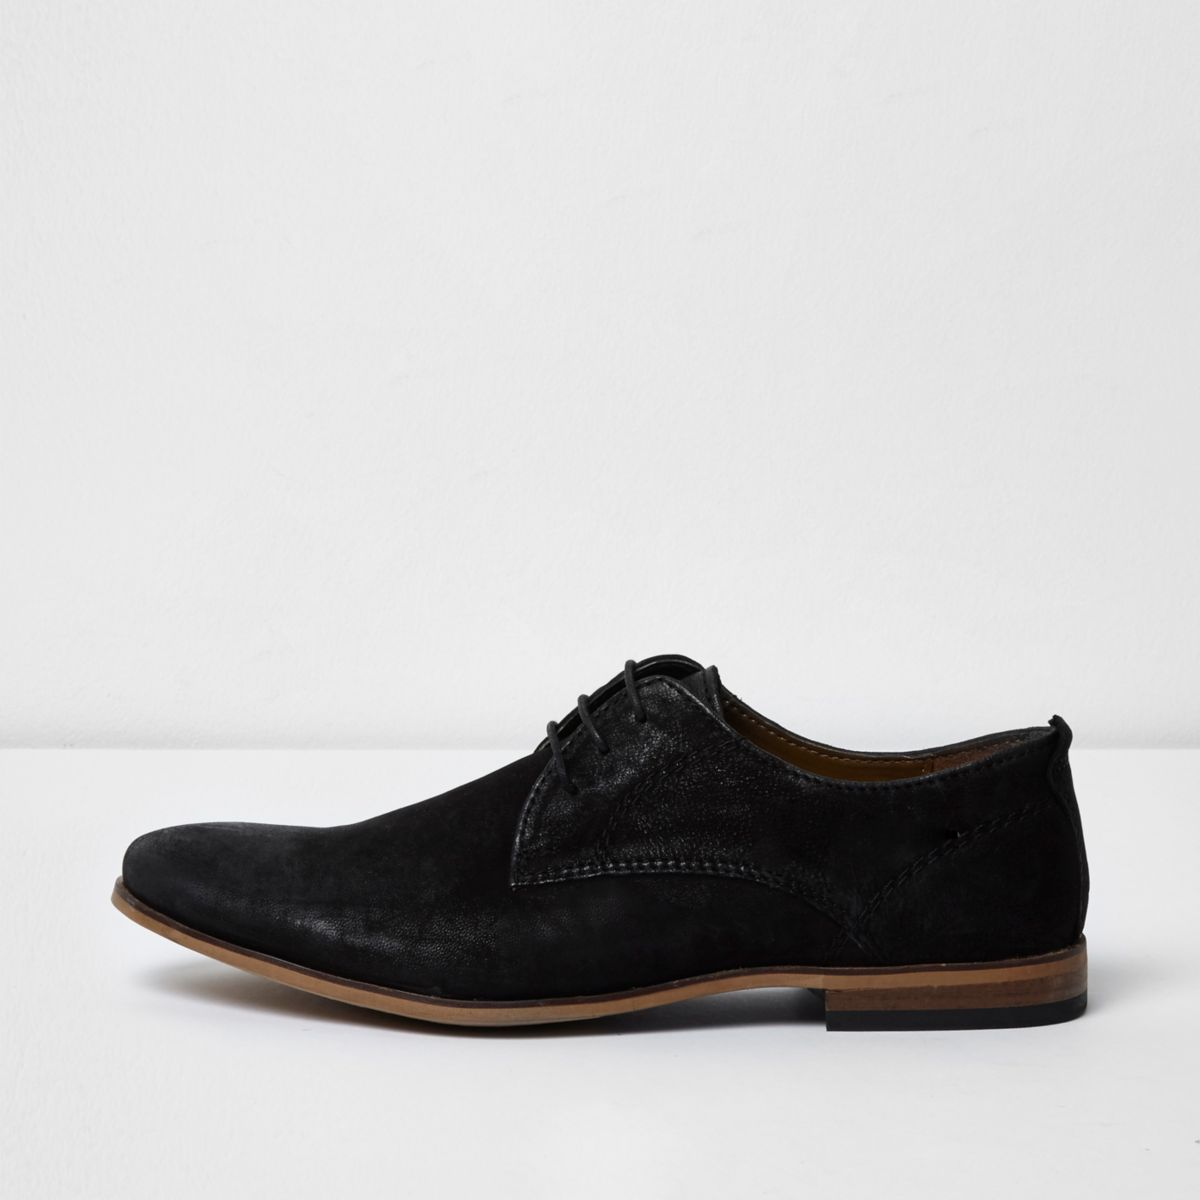 Mens Tan leather lace-up oxford shoes River Island